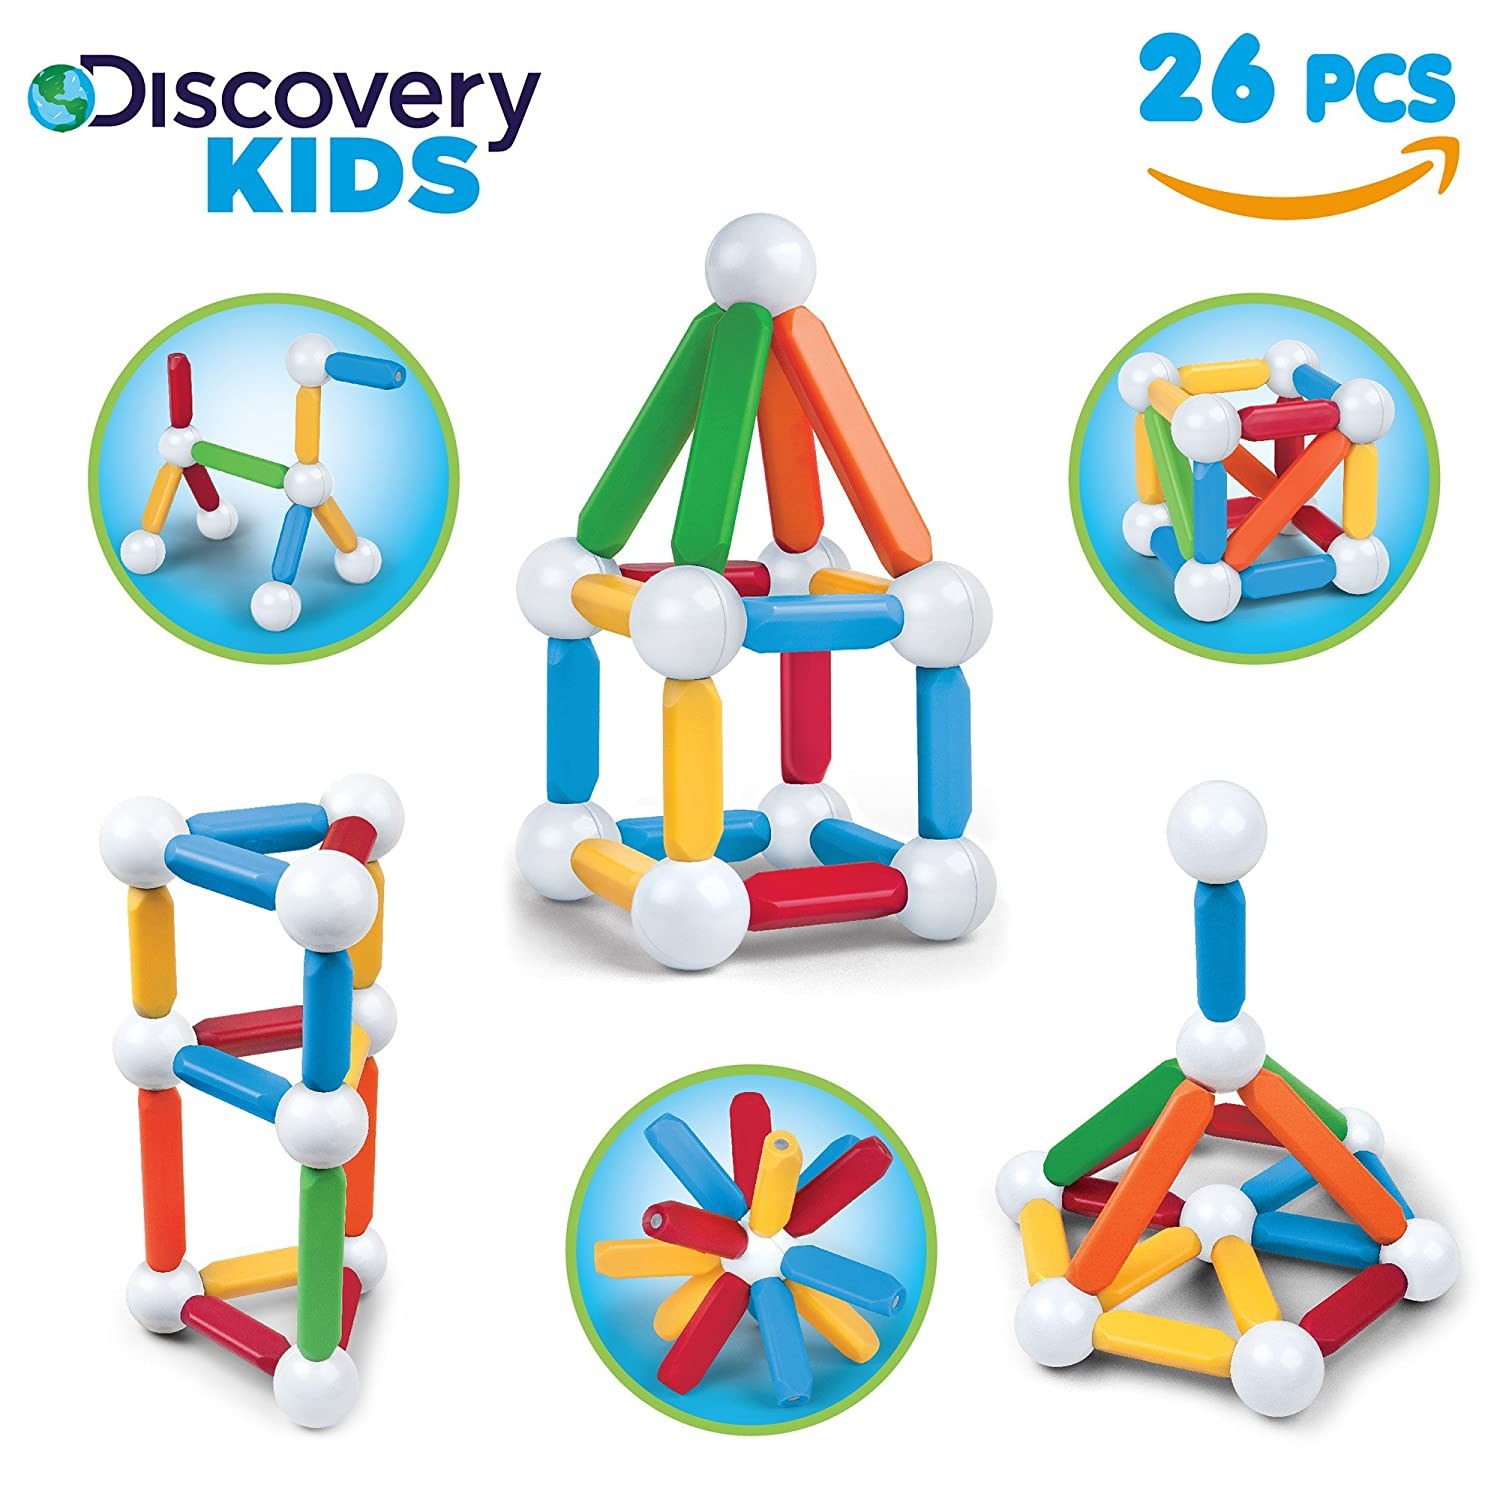 DISCOVERY KIDS 26 Piece Best Magnetic Blocks, Colorful Building Block Set for Boys/Girls, Best 3D Educational Creativity, STEM Toys for Children – Red, Green, Blue, Yellow, White Review